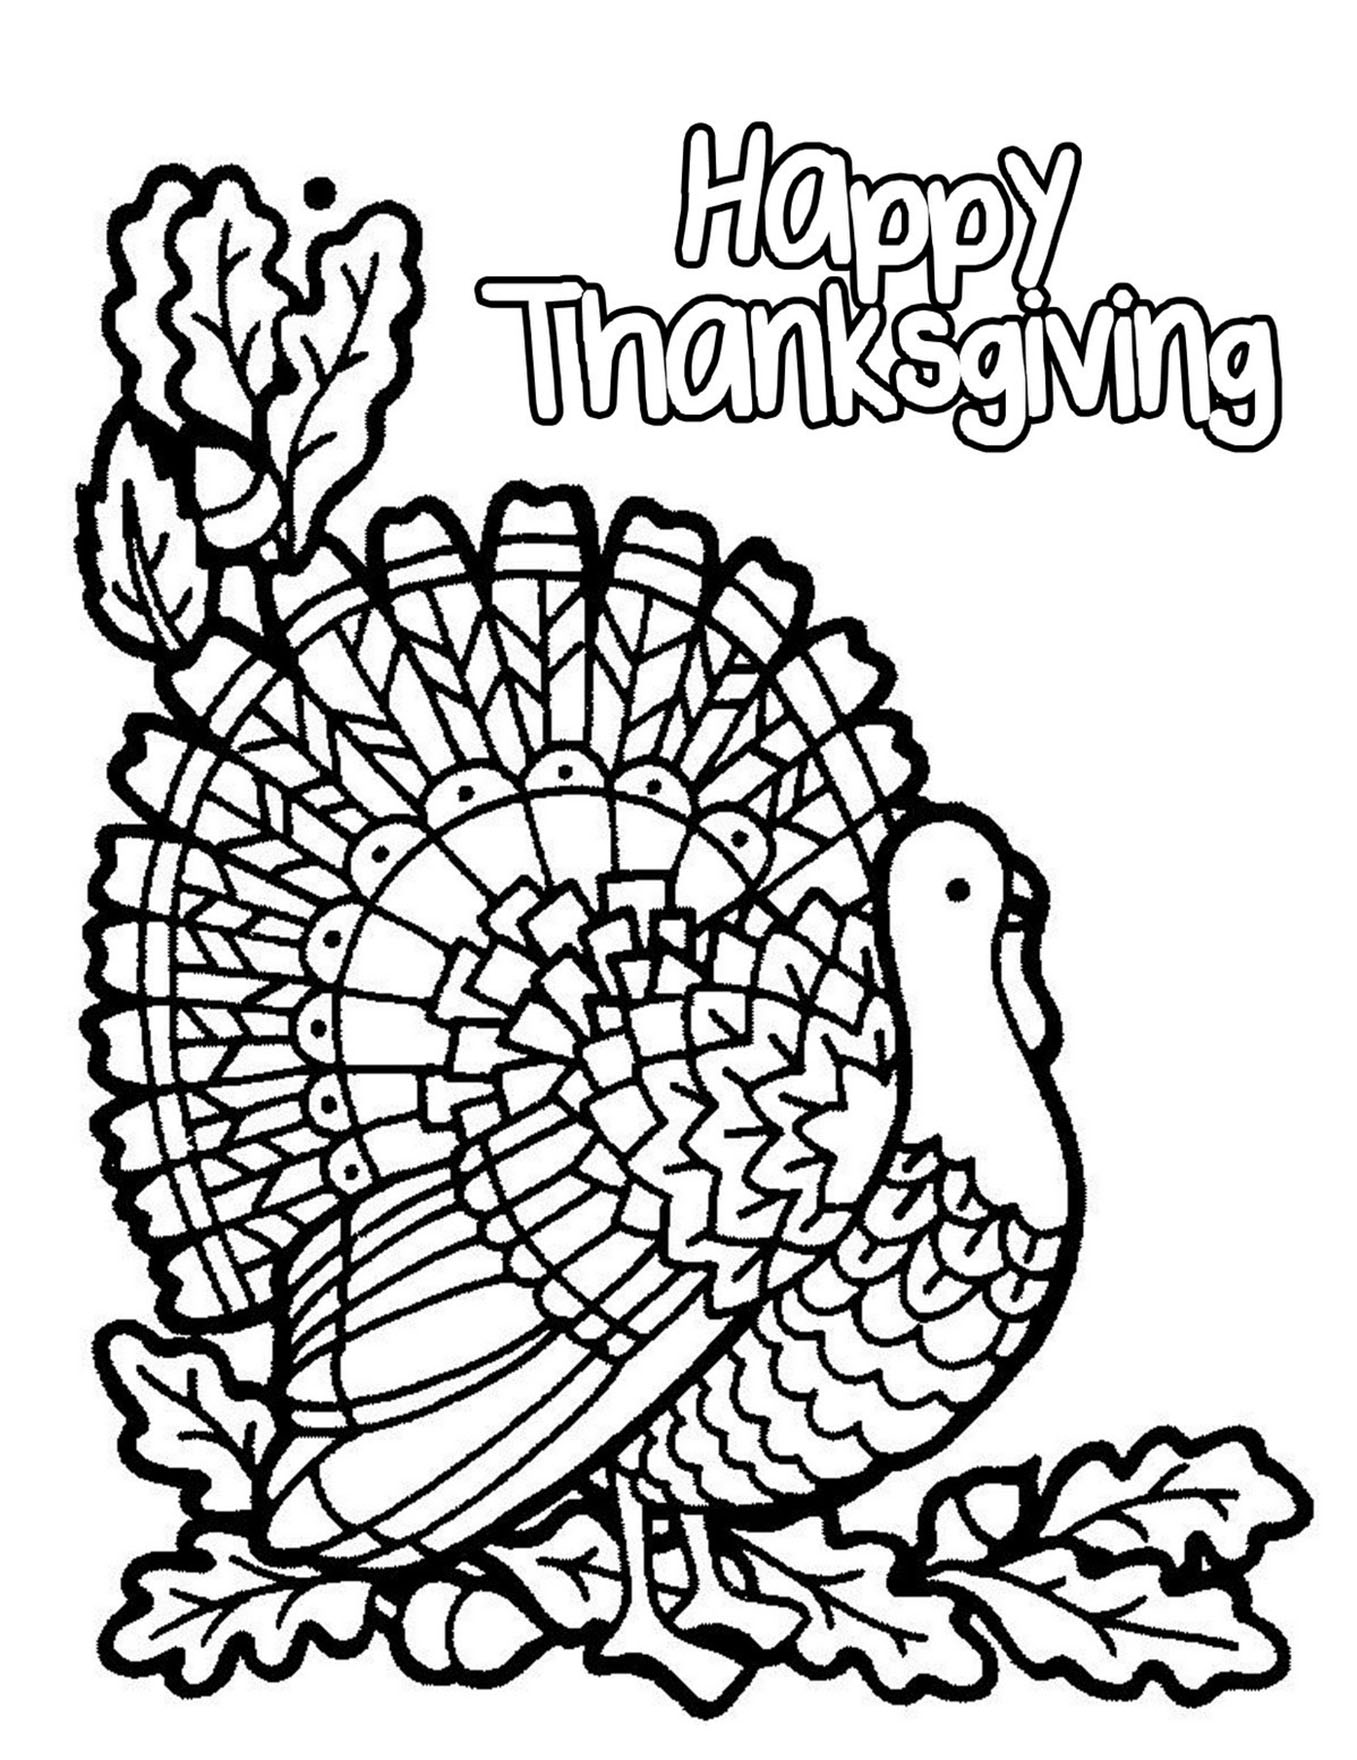 Halloween Simple Turkey Thanksgiving Adult Coloring Pages